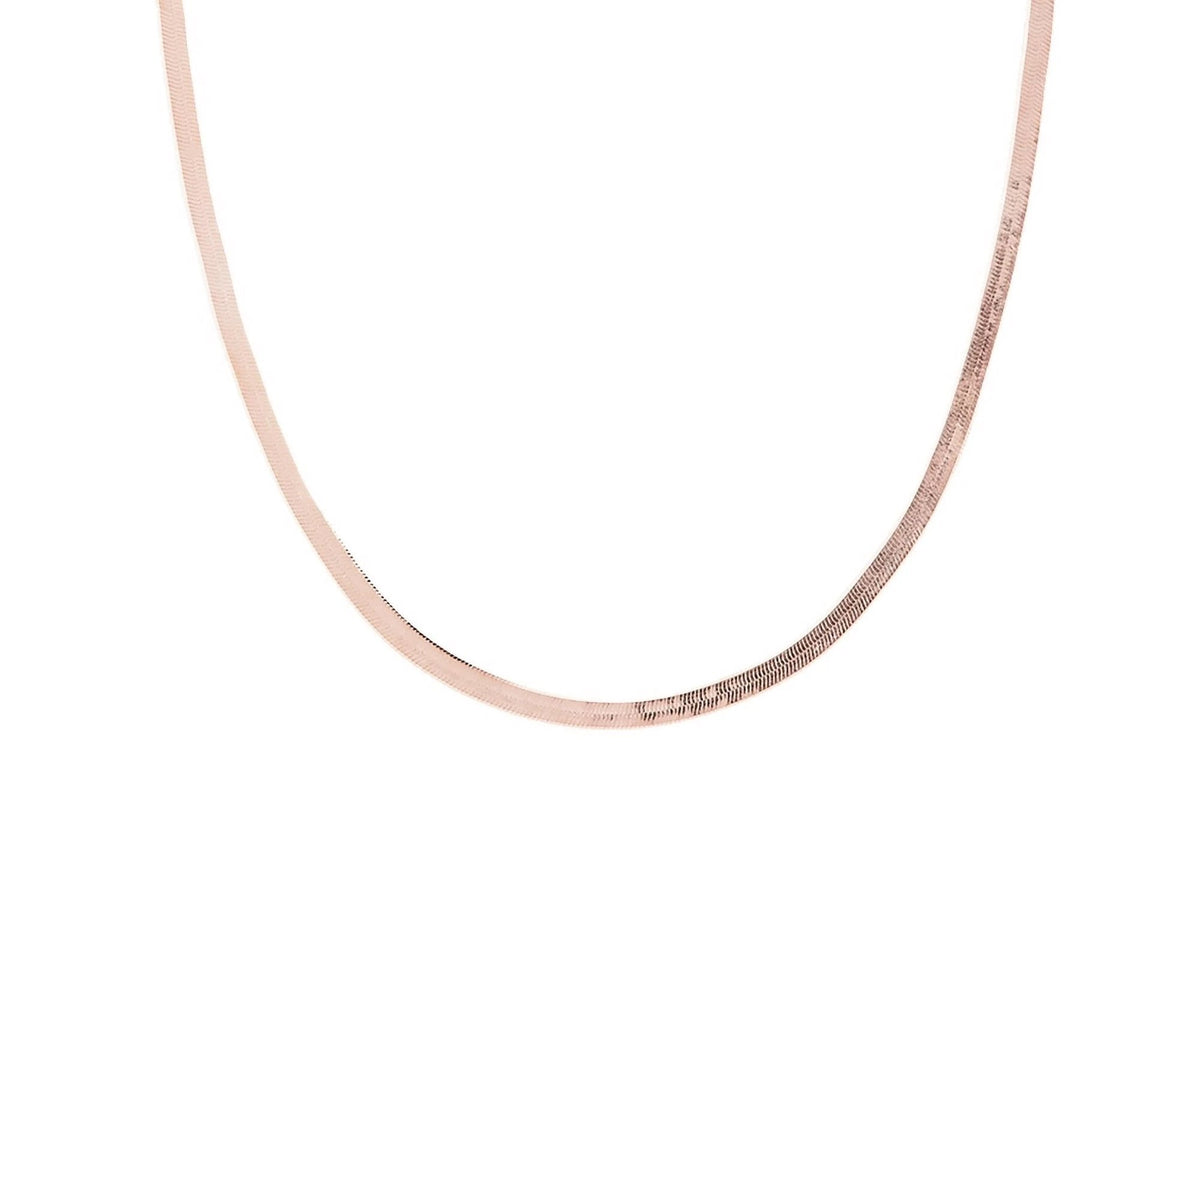 "CHARMING HERRINGBONE CHAIN 14.5 - 16"" NECKLACE ROSE GOLD - SO PRETTY CARA COTTER"